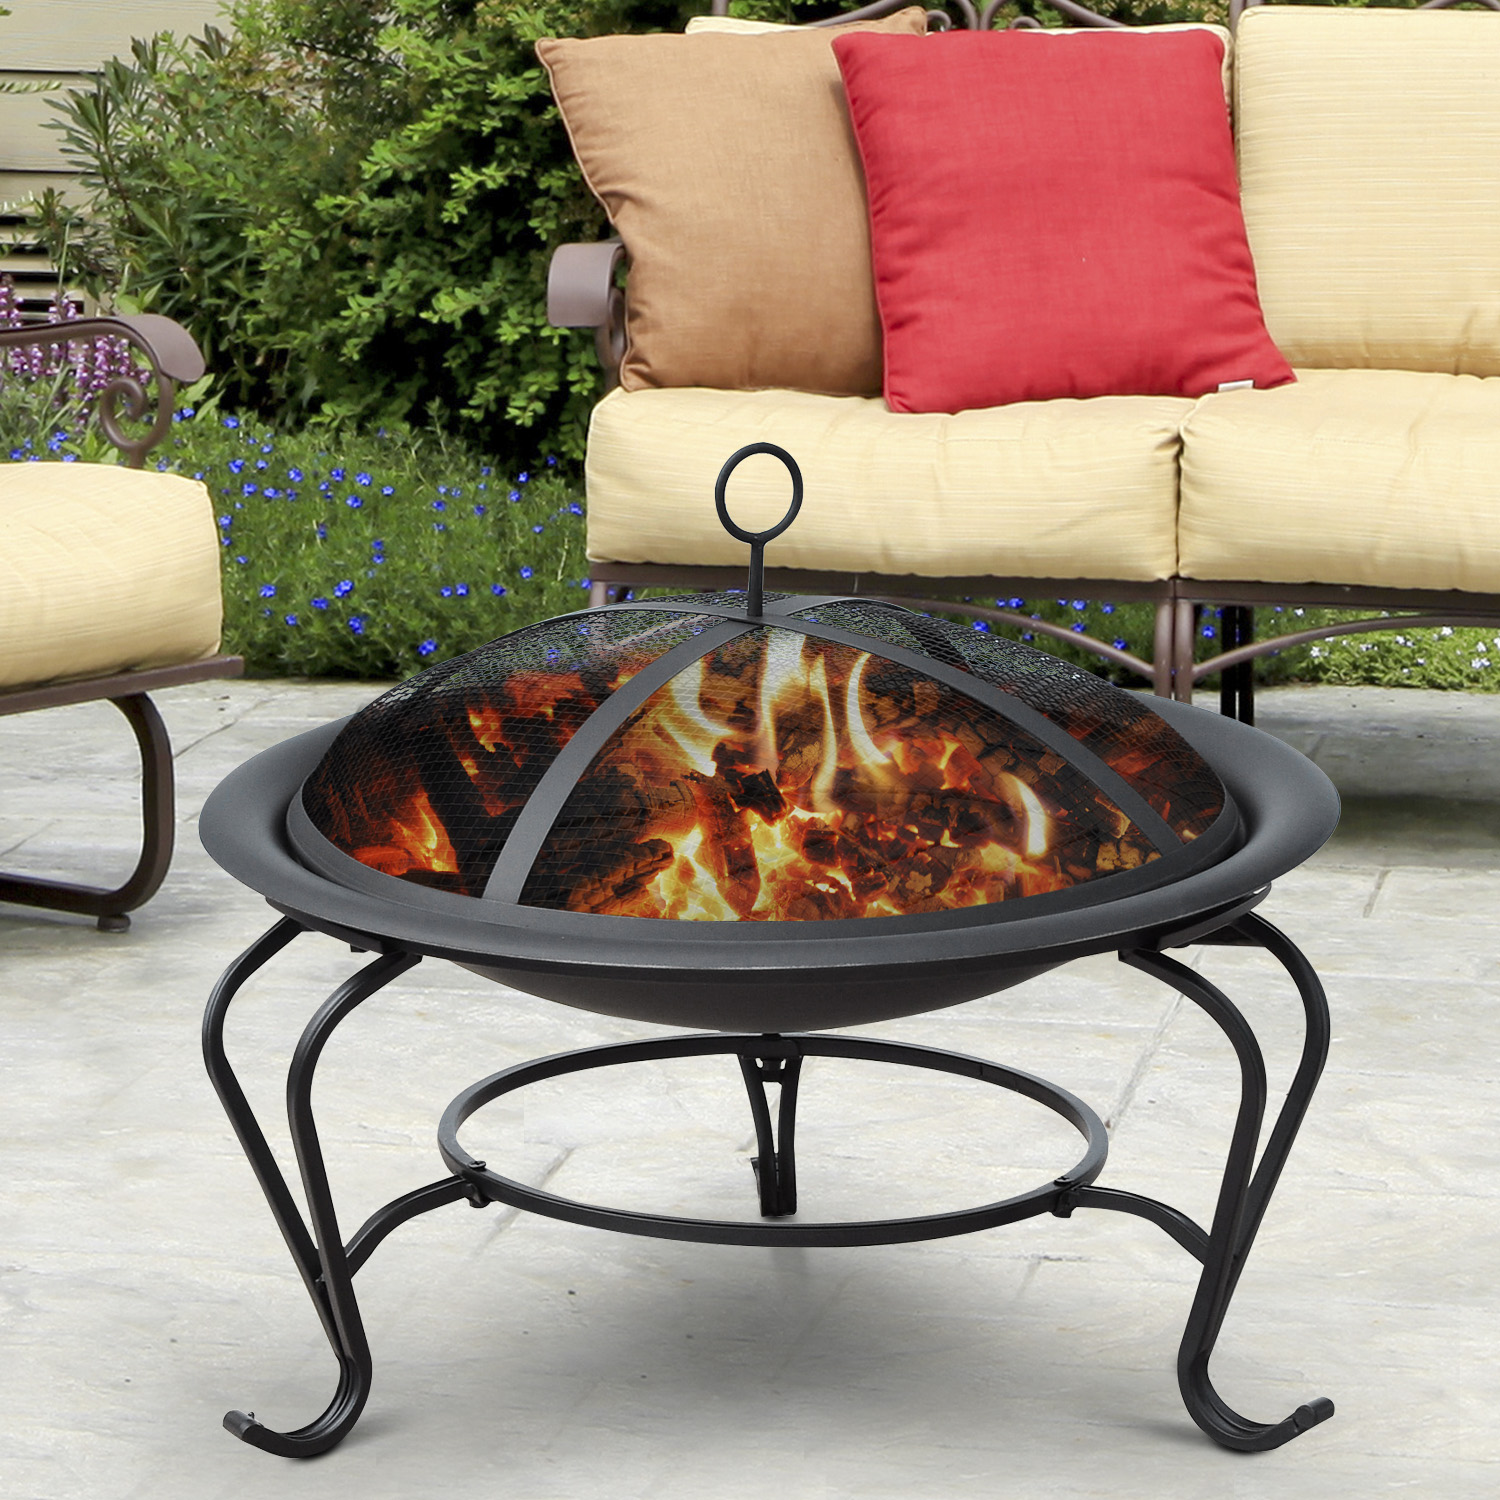 "Image of CAD $74.99 Outsunny 22"" Round Fire Pit with Poker and Spark Screen Wood Burning Patio Fireplace Black / Firepit Garden Heater Portable Porch Deck w/ Canada 95509792419"